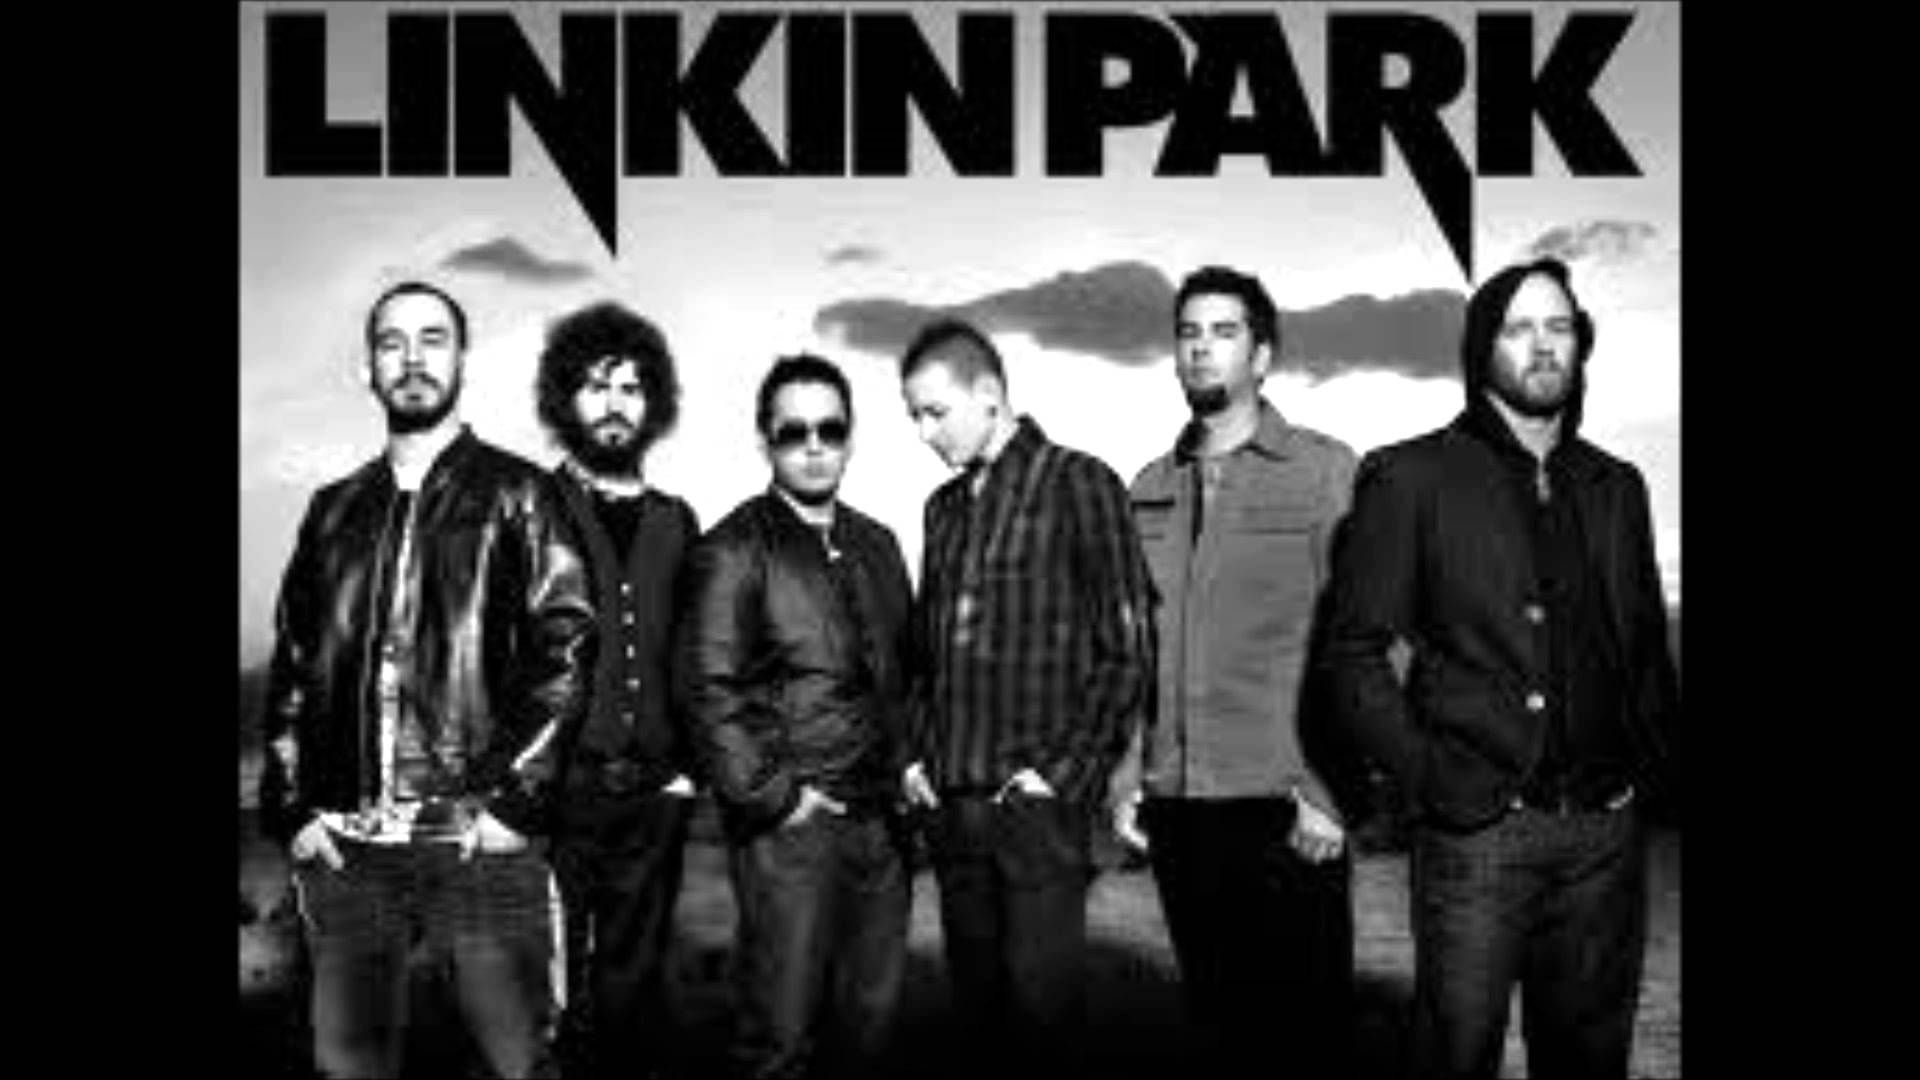 Download free ringtones for iphone: In the end - Linkin Park